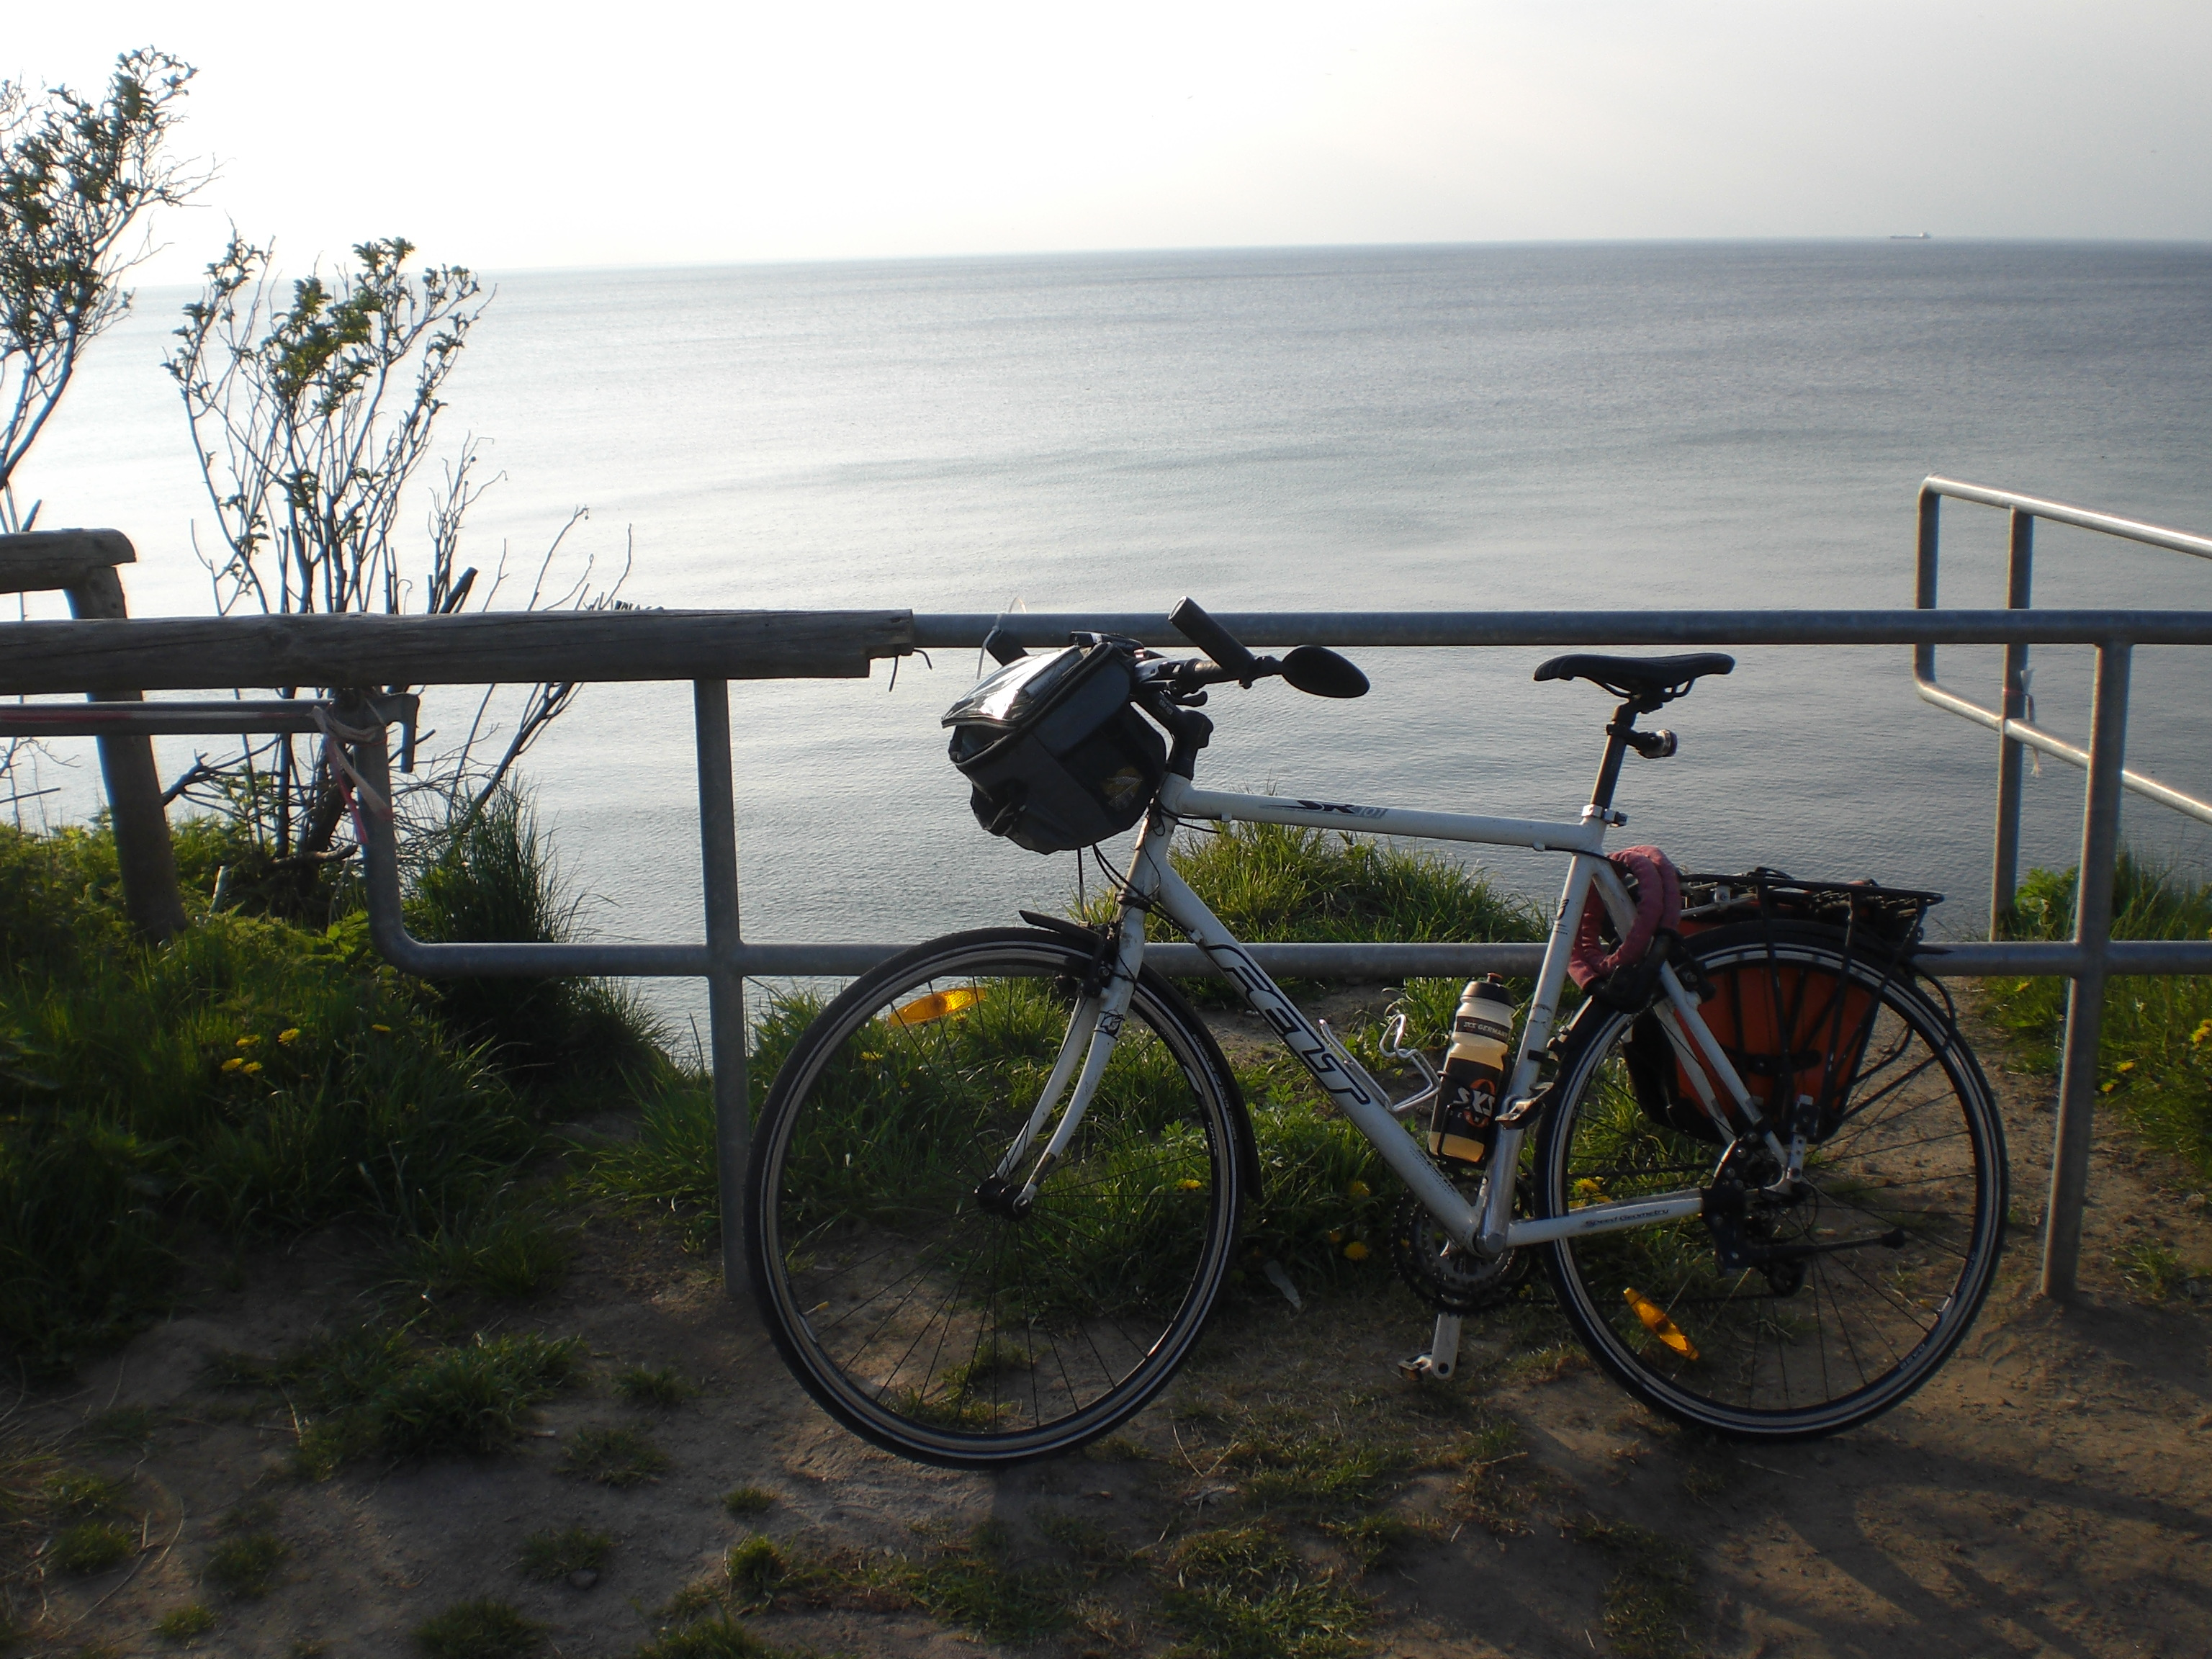 Once you have reached the cliff coast you can park you bike and enjoy the view